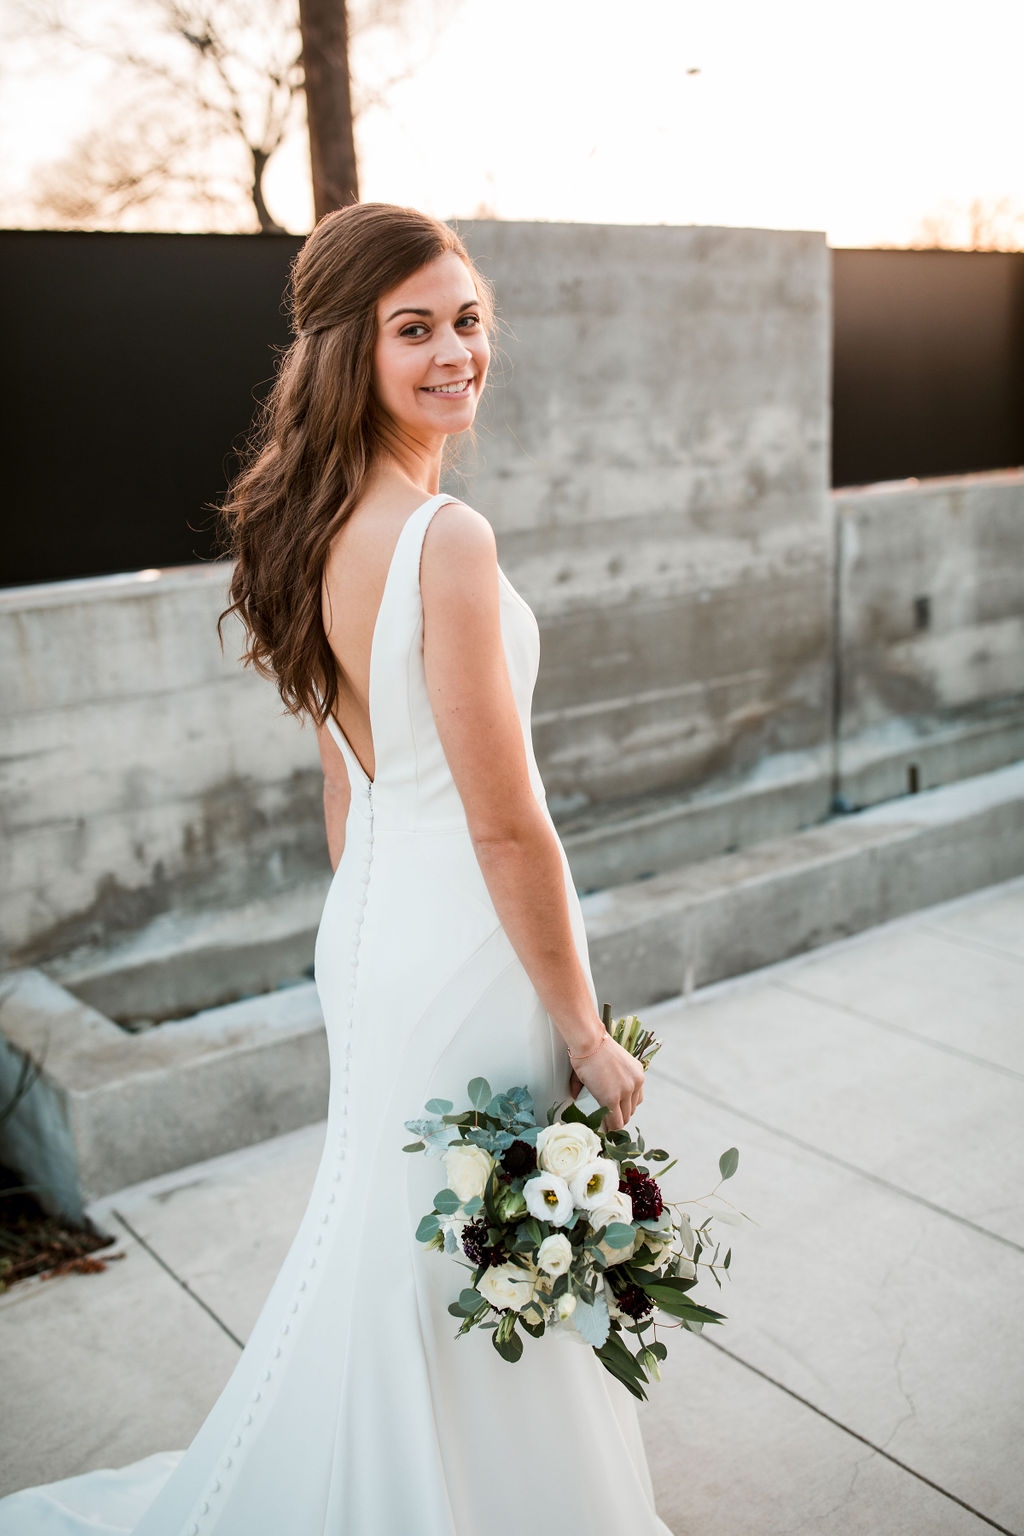 Wedding dress: John Myers Photography and Videography featured on Nashville Bride Guide